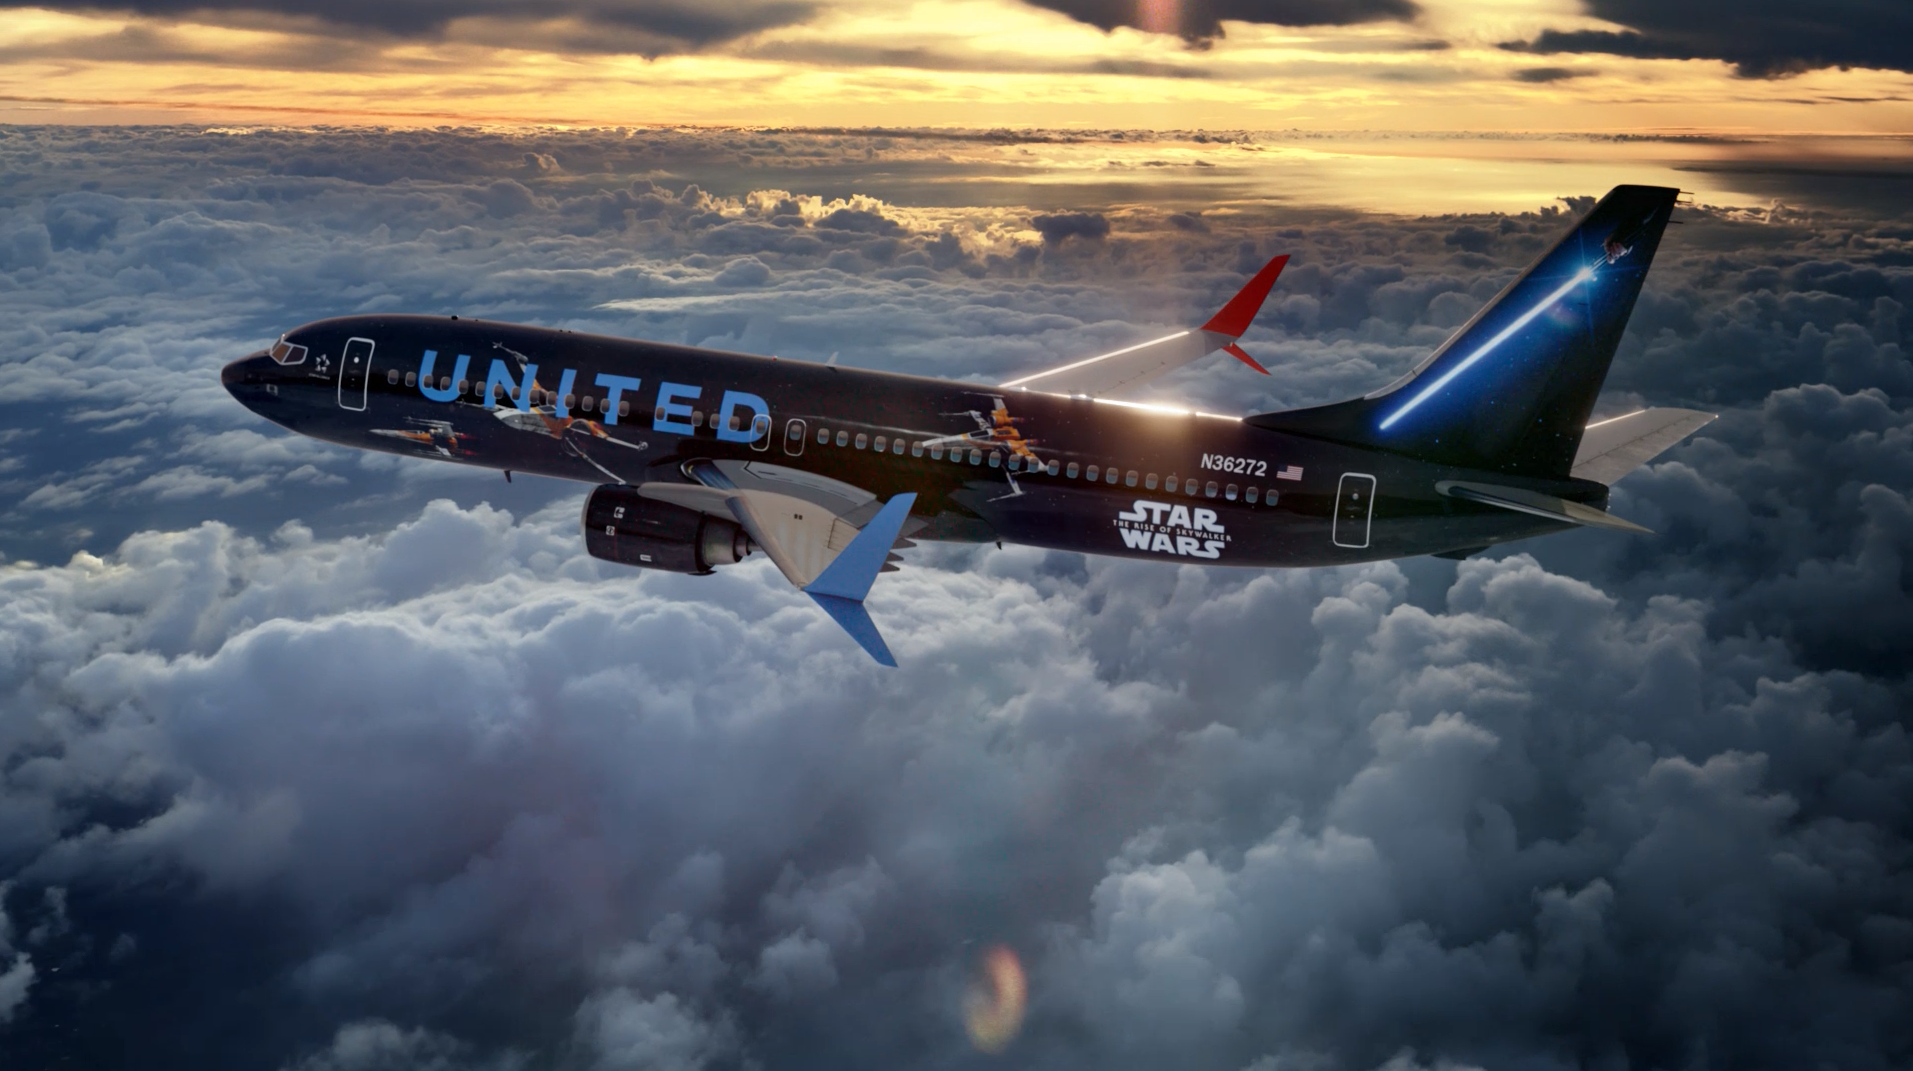 Star Wars United Airlines